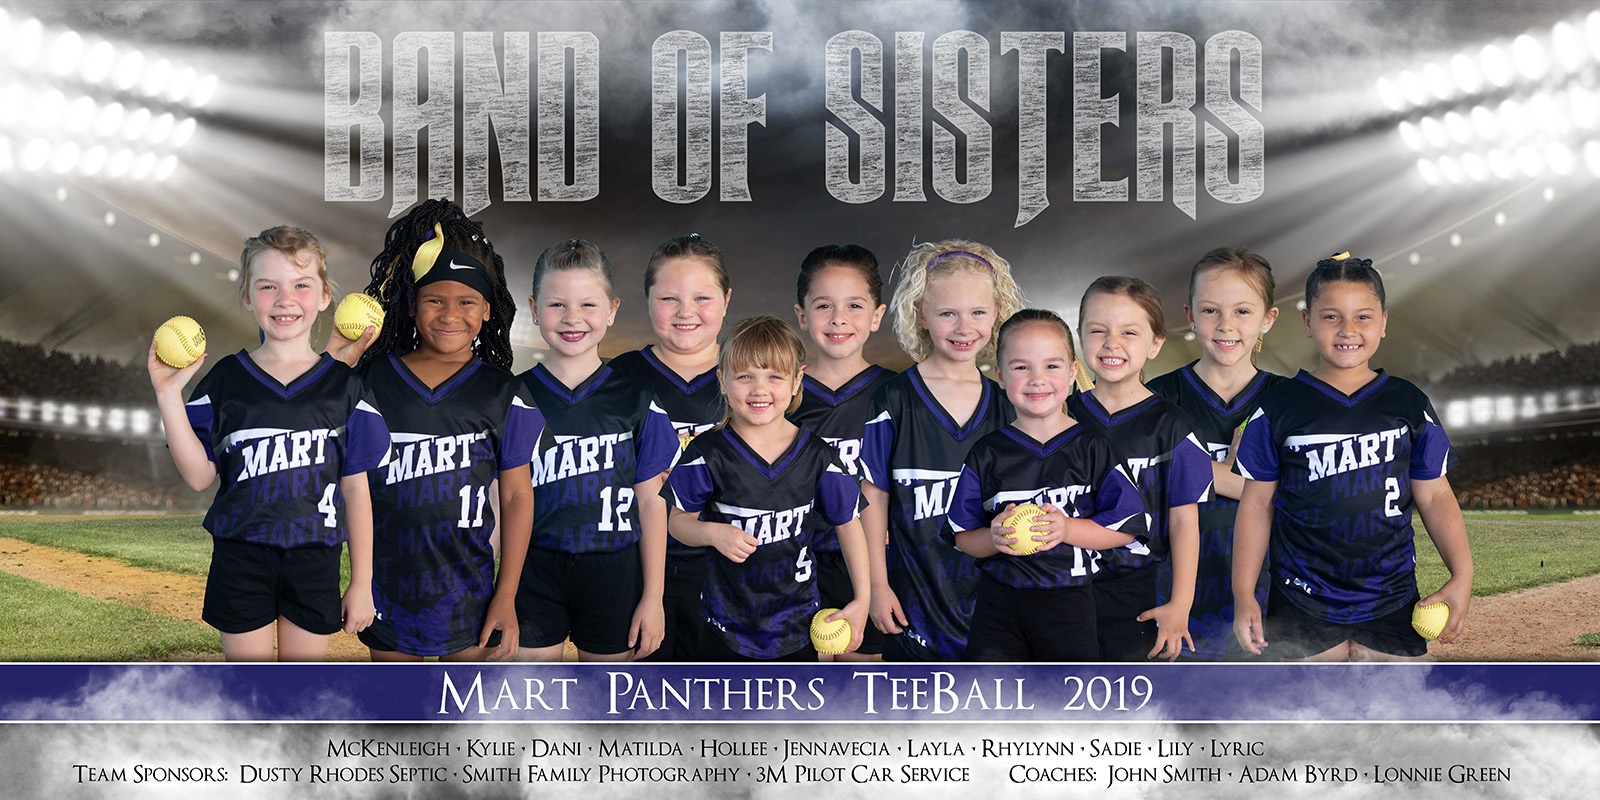 mart_6U_smith_softball_team_2019